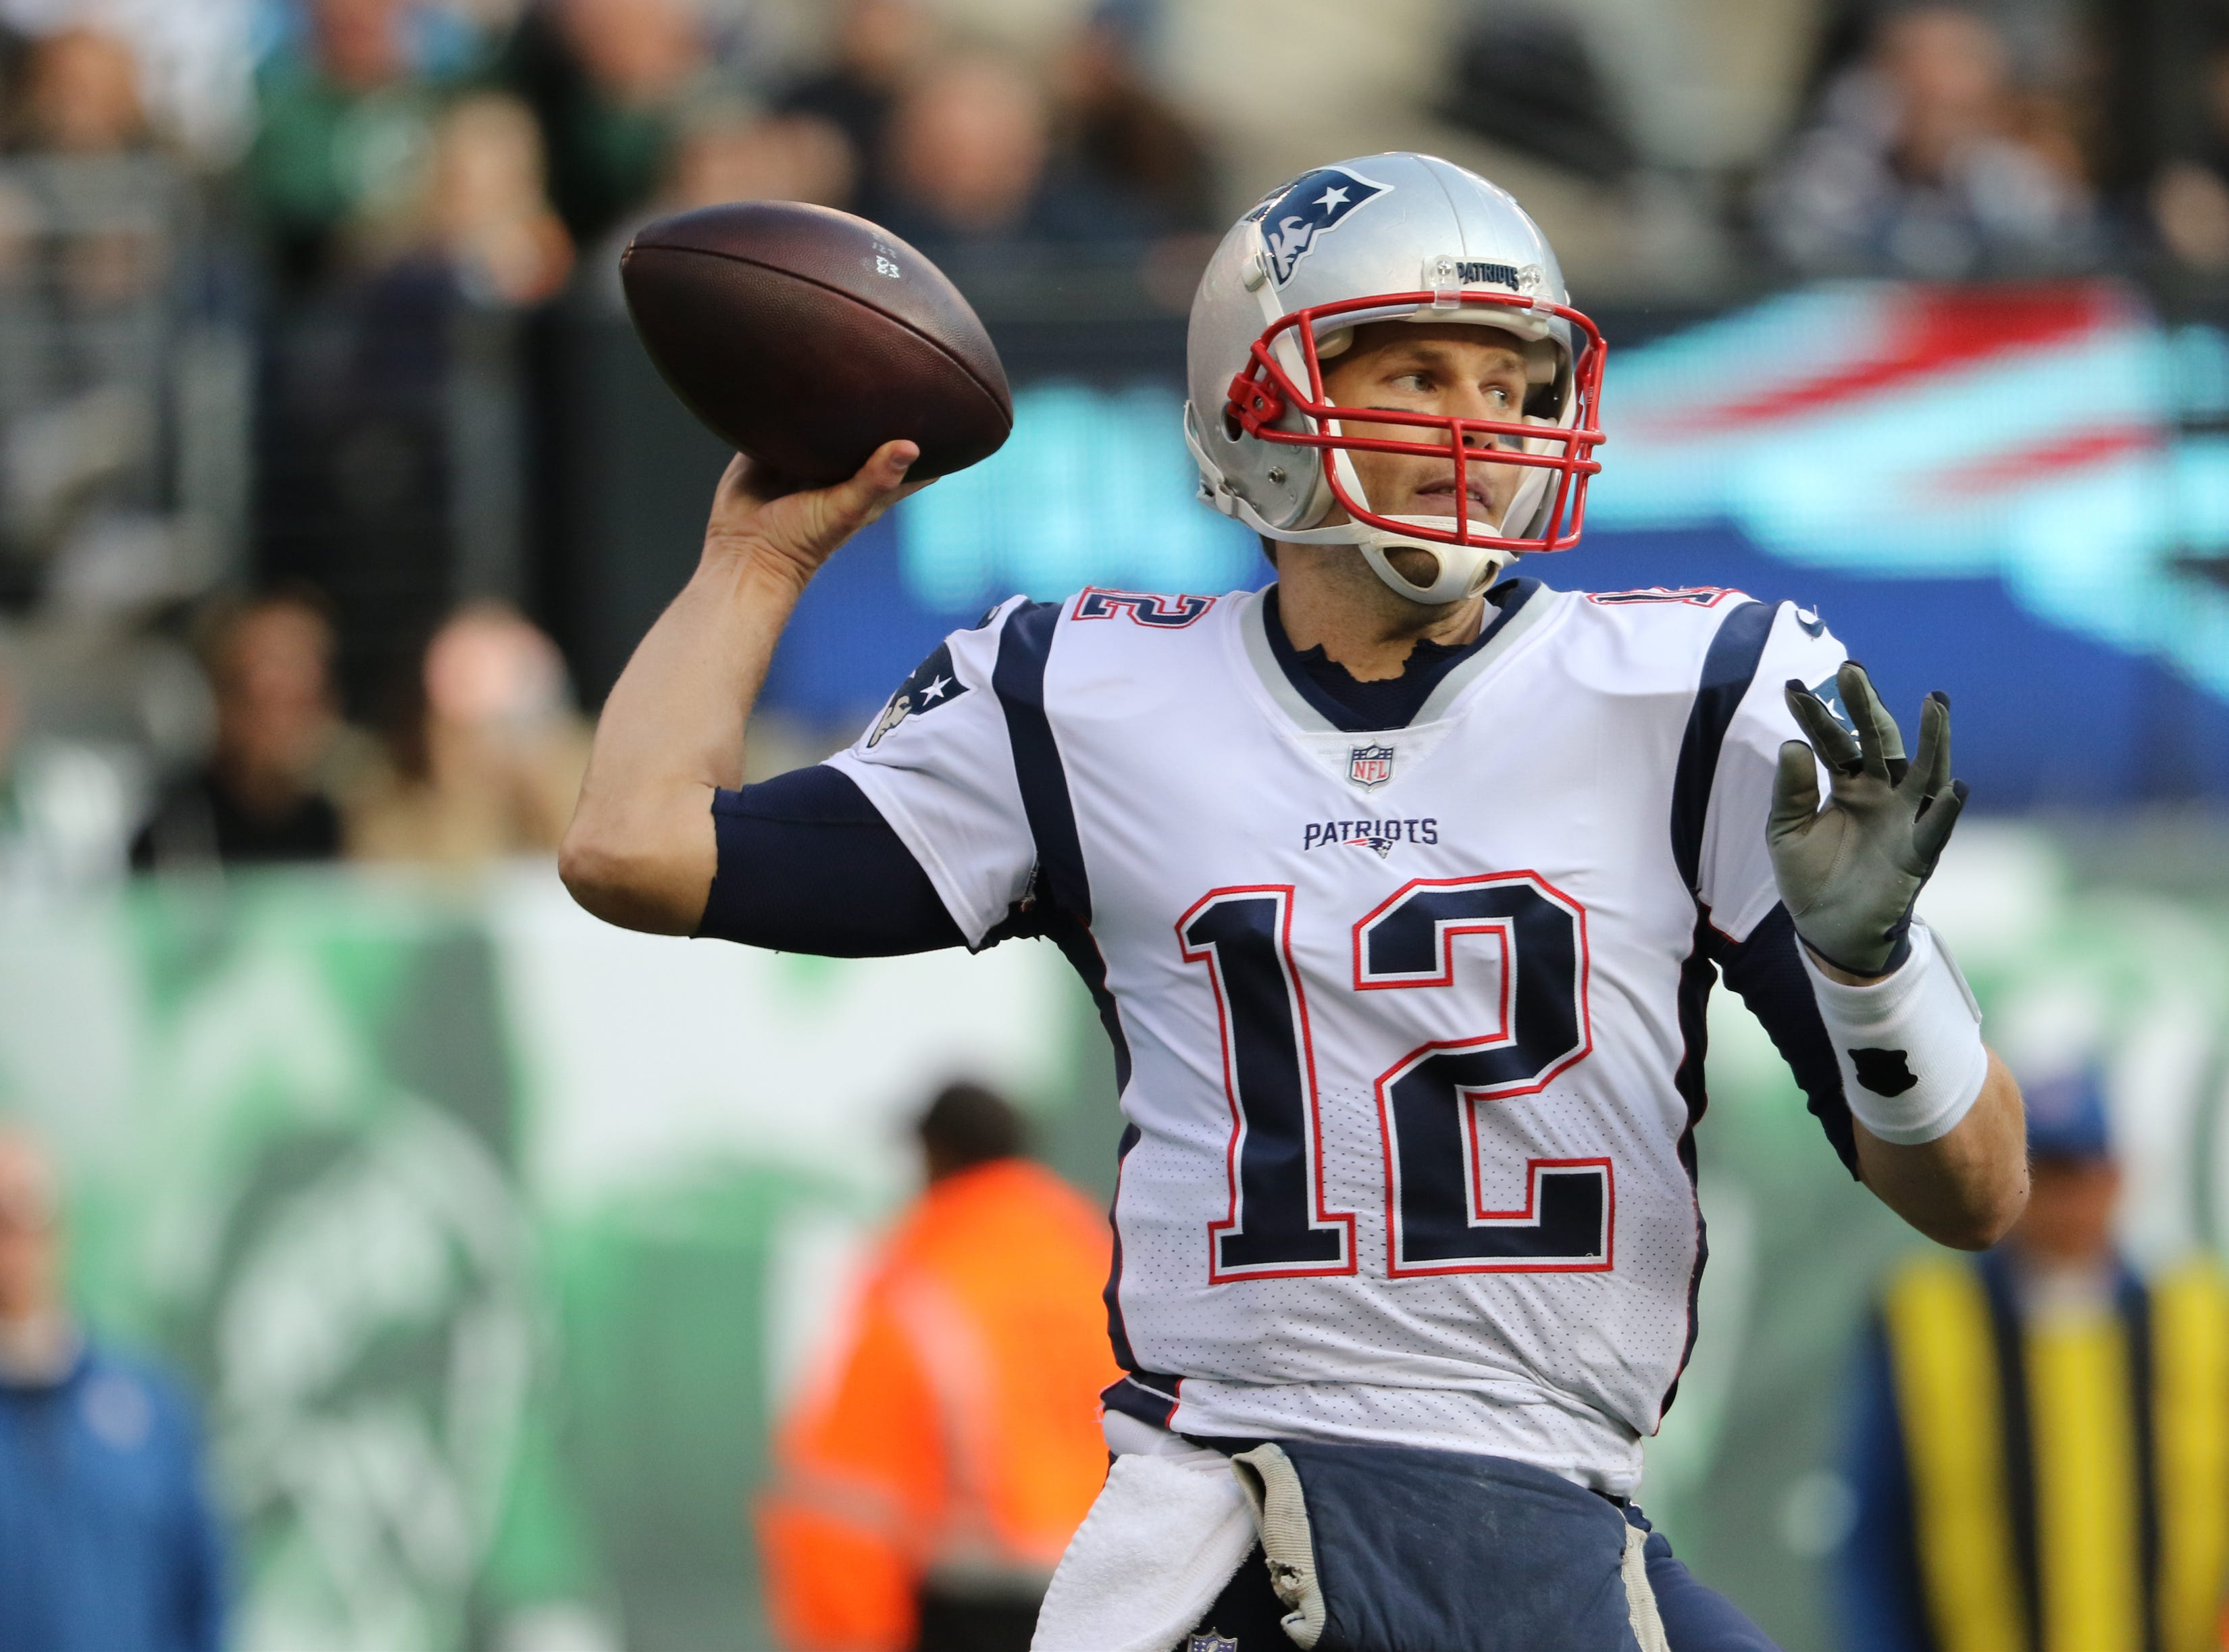 Tom Brady passes the ball during the first half, Sunday, November 25, 2018.